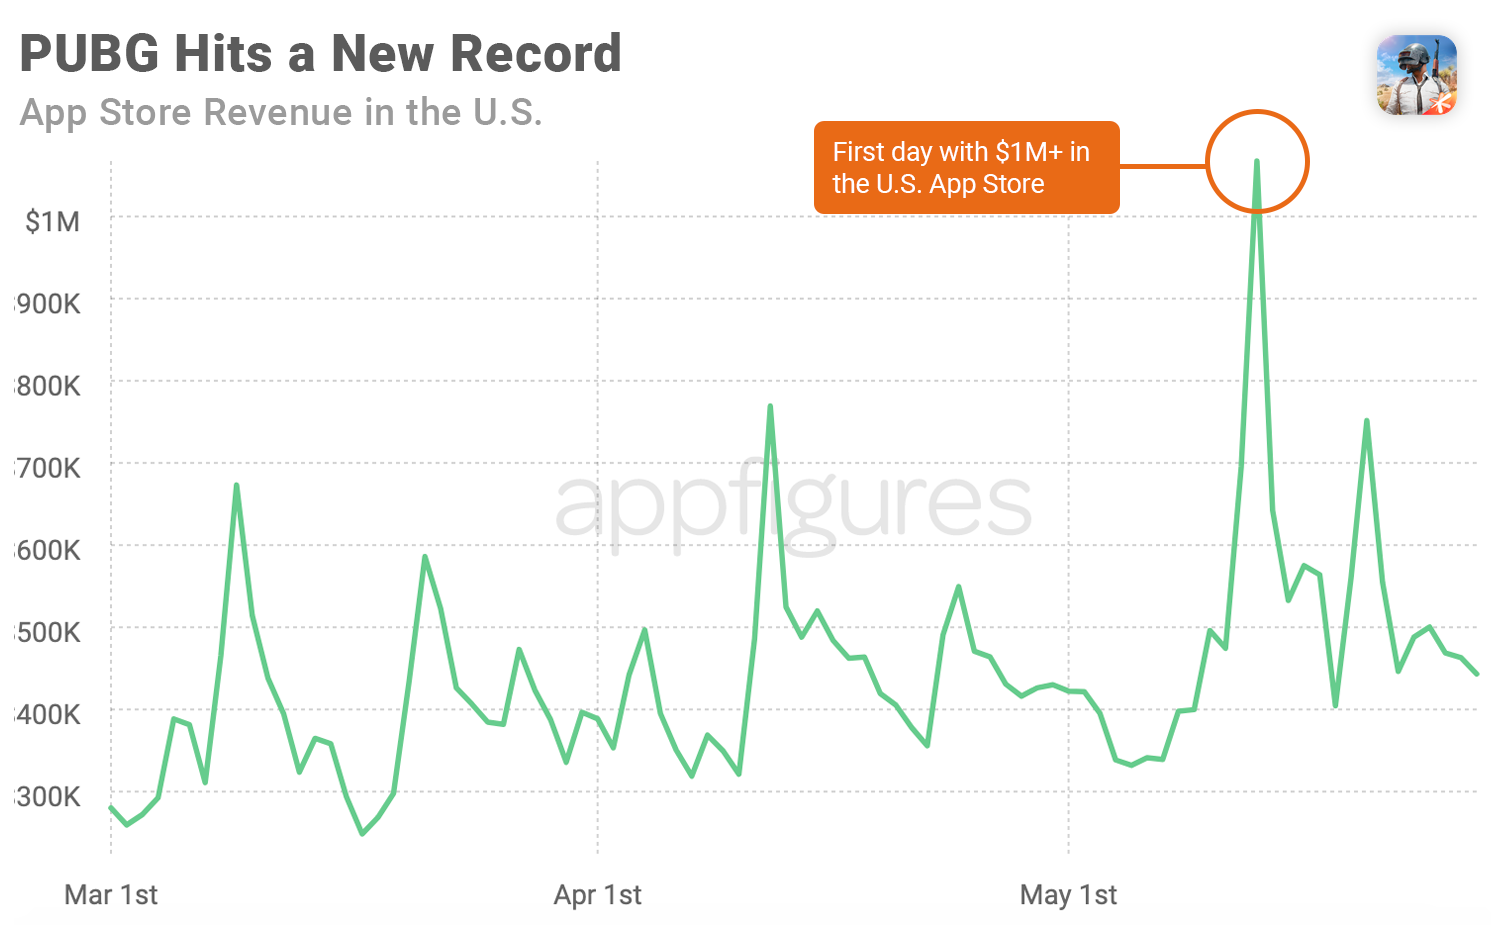 PUBG revenue in the U.S. App Store